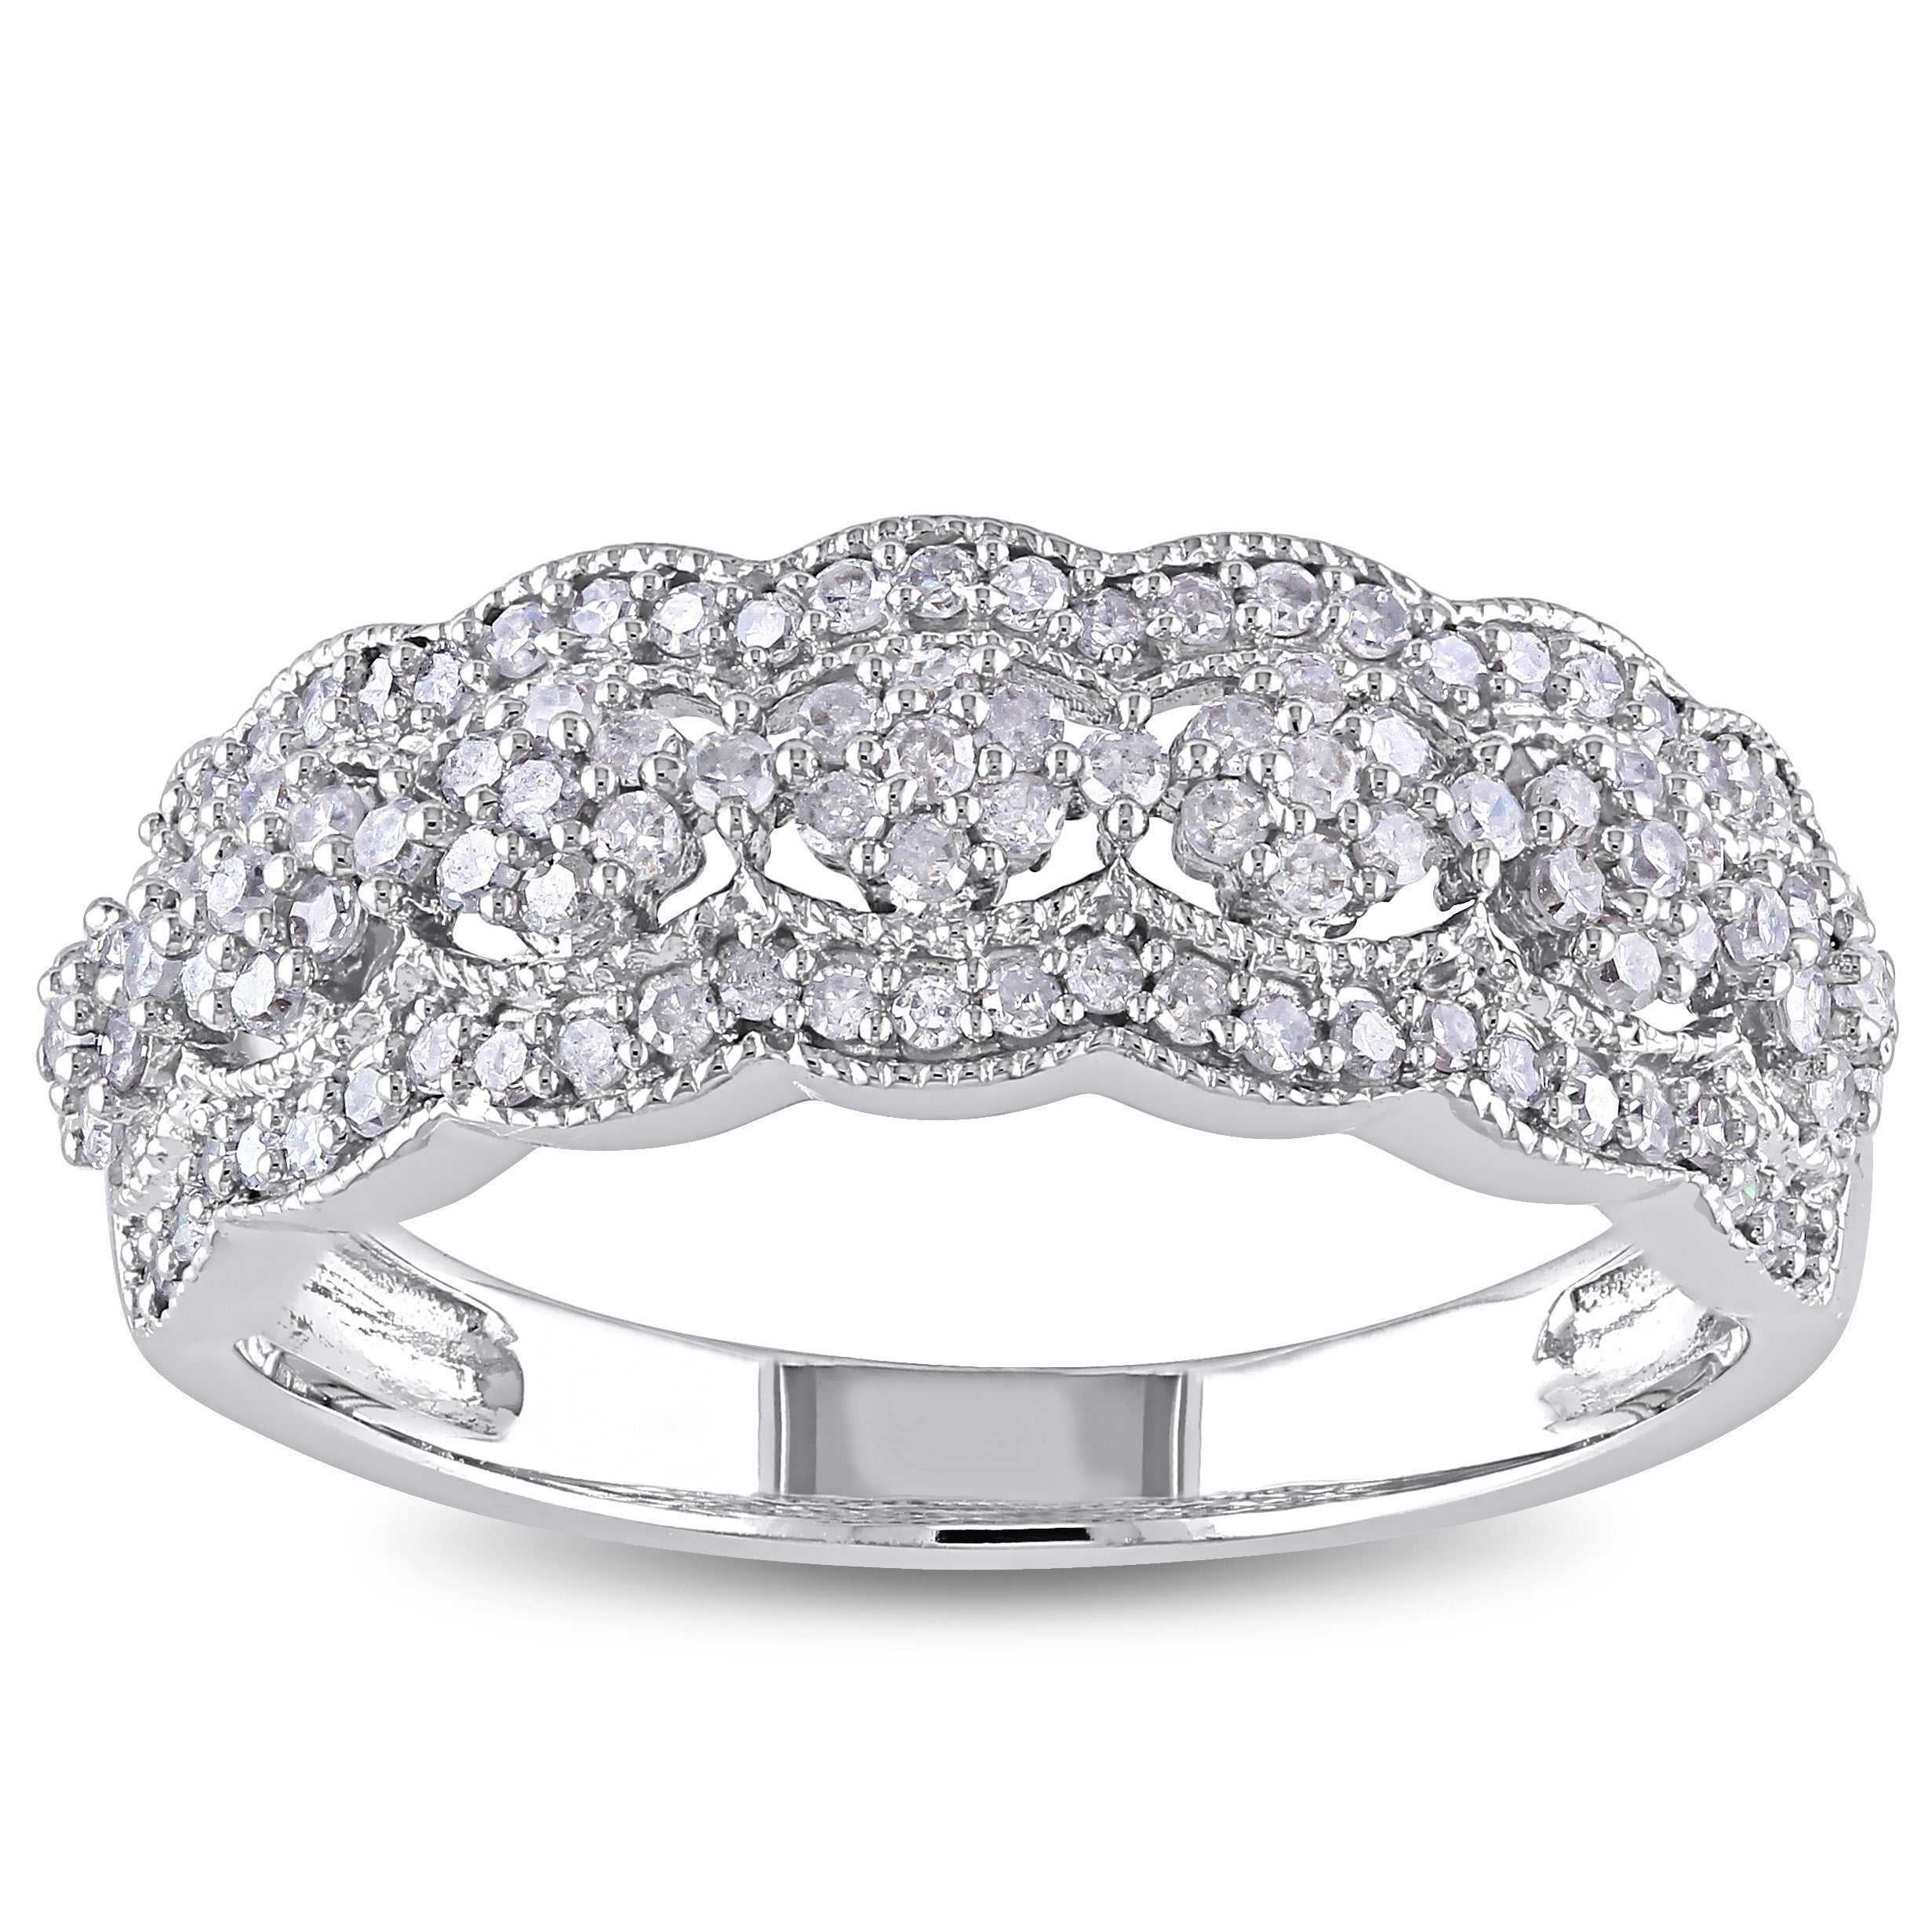 Miadora Signature 10k White Gold 1/2ct Tdw Diamond Vintage Floral Anniversary Band For Most Recently Released Diamond Multi Triangle Anniversary Rings In White Gold (View 10 of 25)